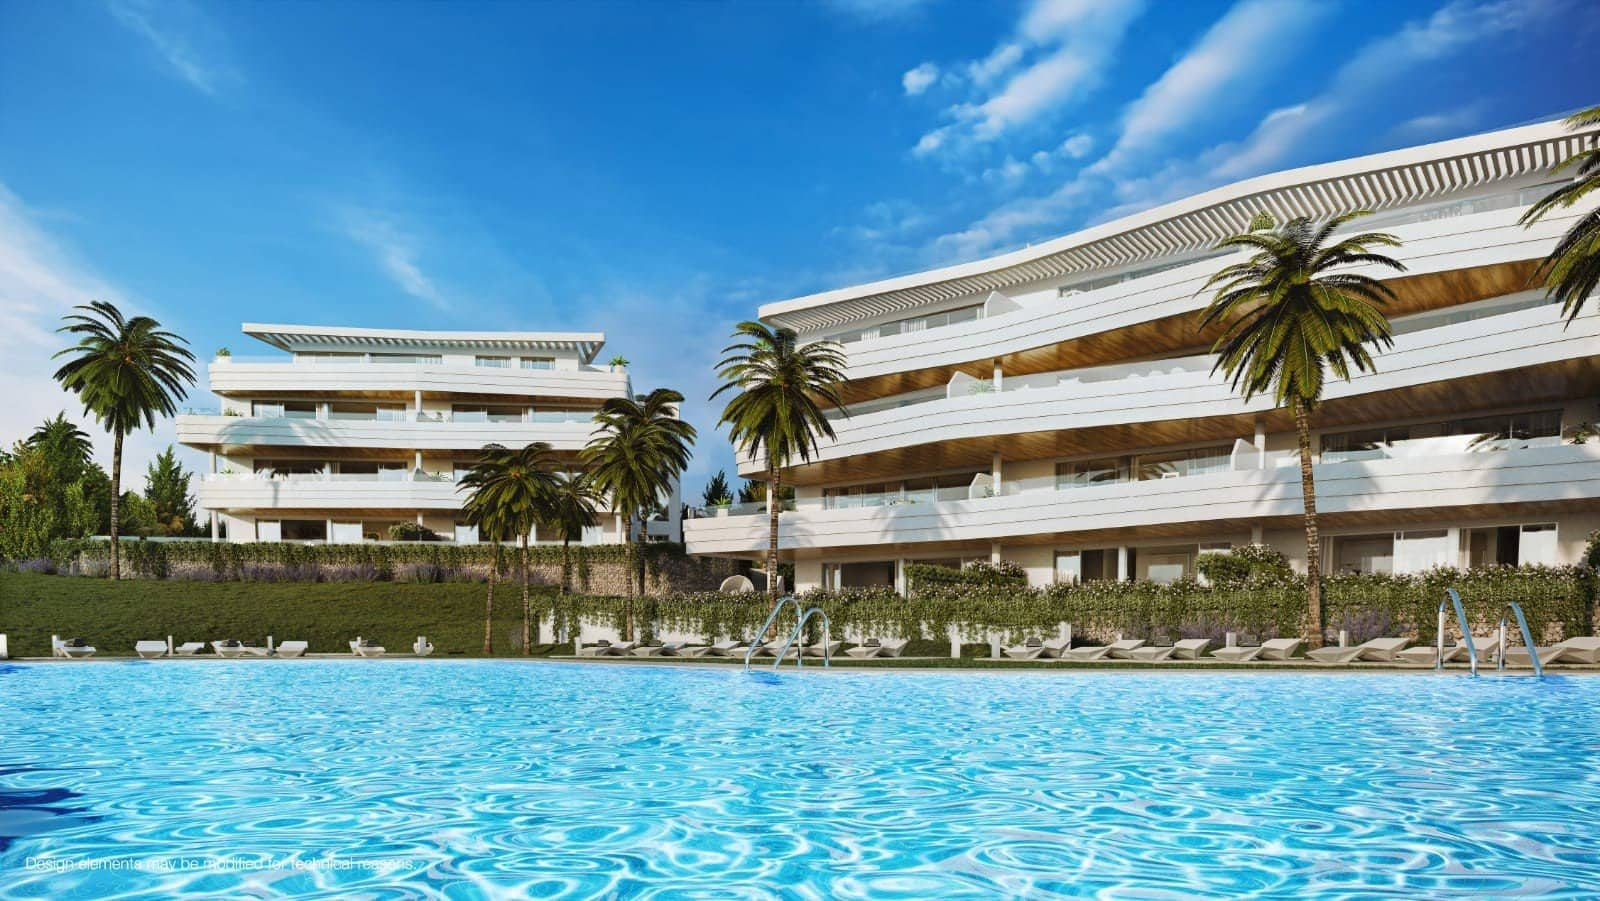 3 bedroom Apartment for sale in Benalmadena with pool garage - € 585,000 (Ref: 4660599)